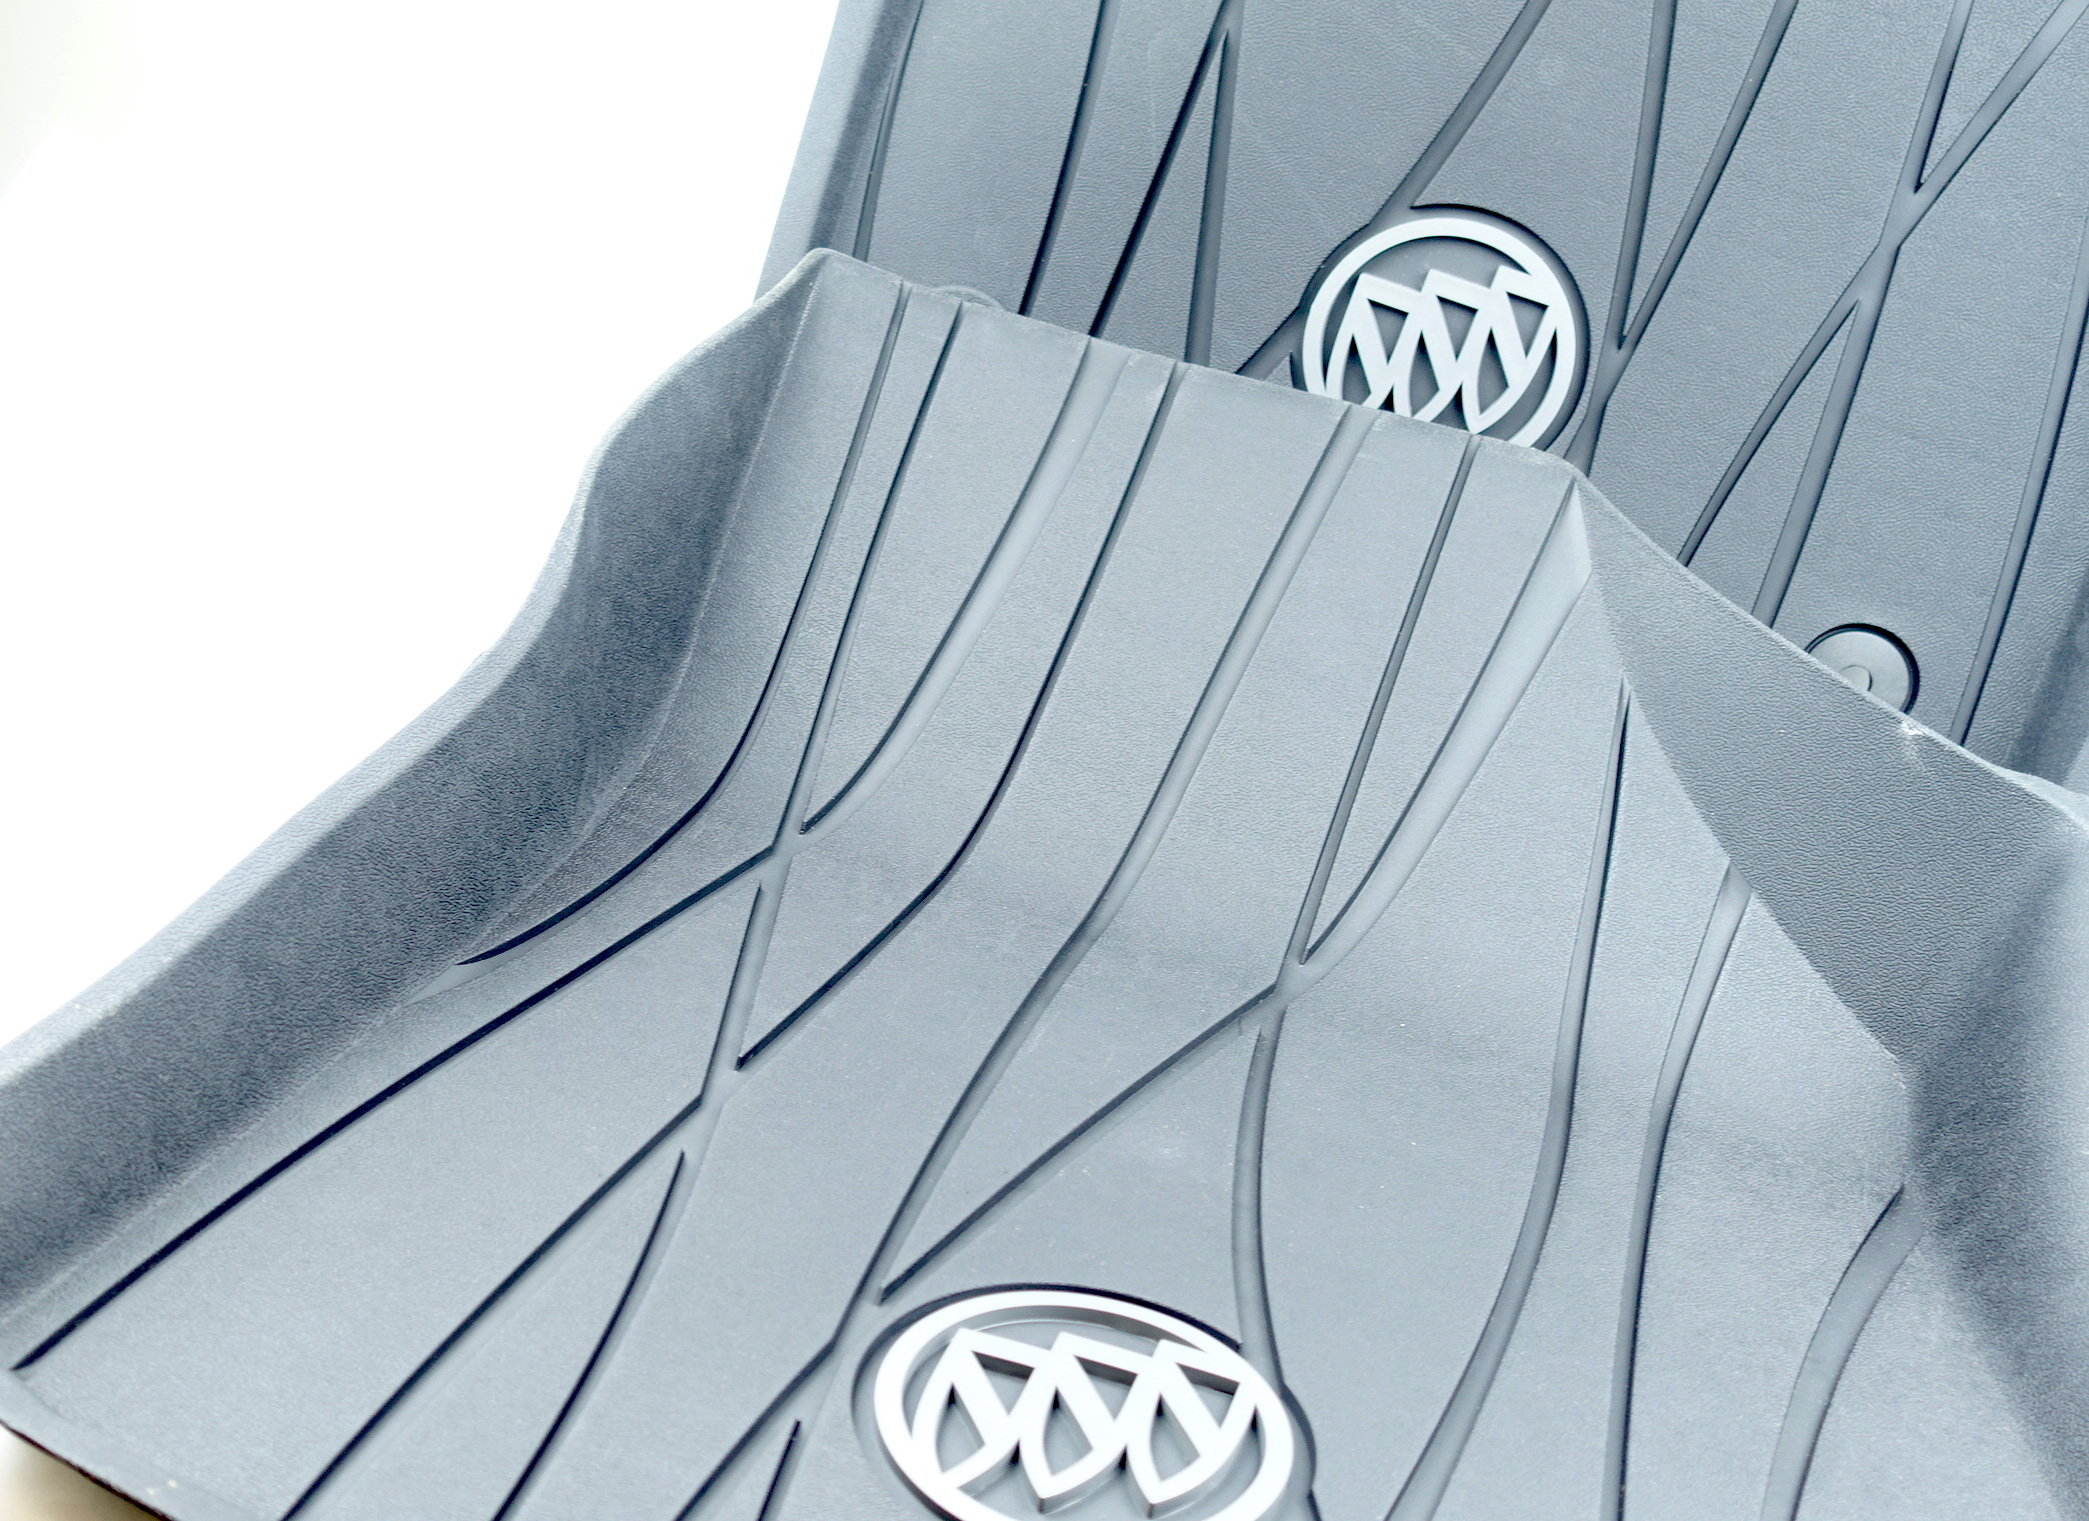 New OEM 84359483 GM 18-21 Buick Enclave Full Coverage Front Black Floor Liners - image 10